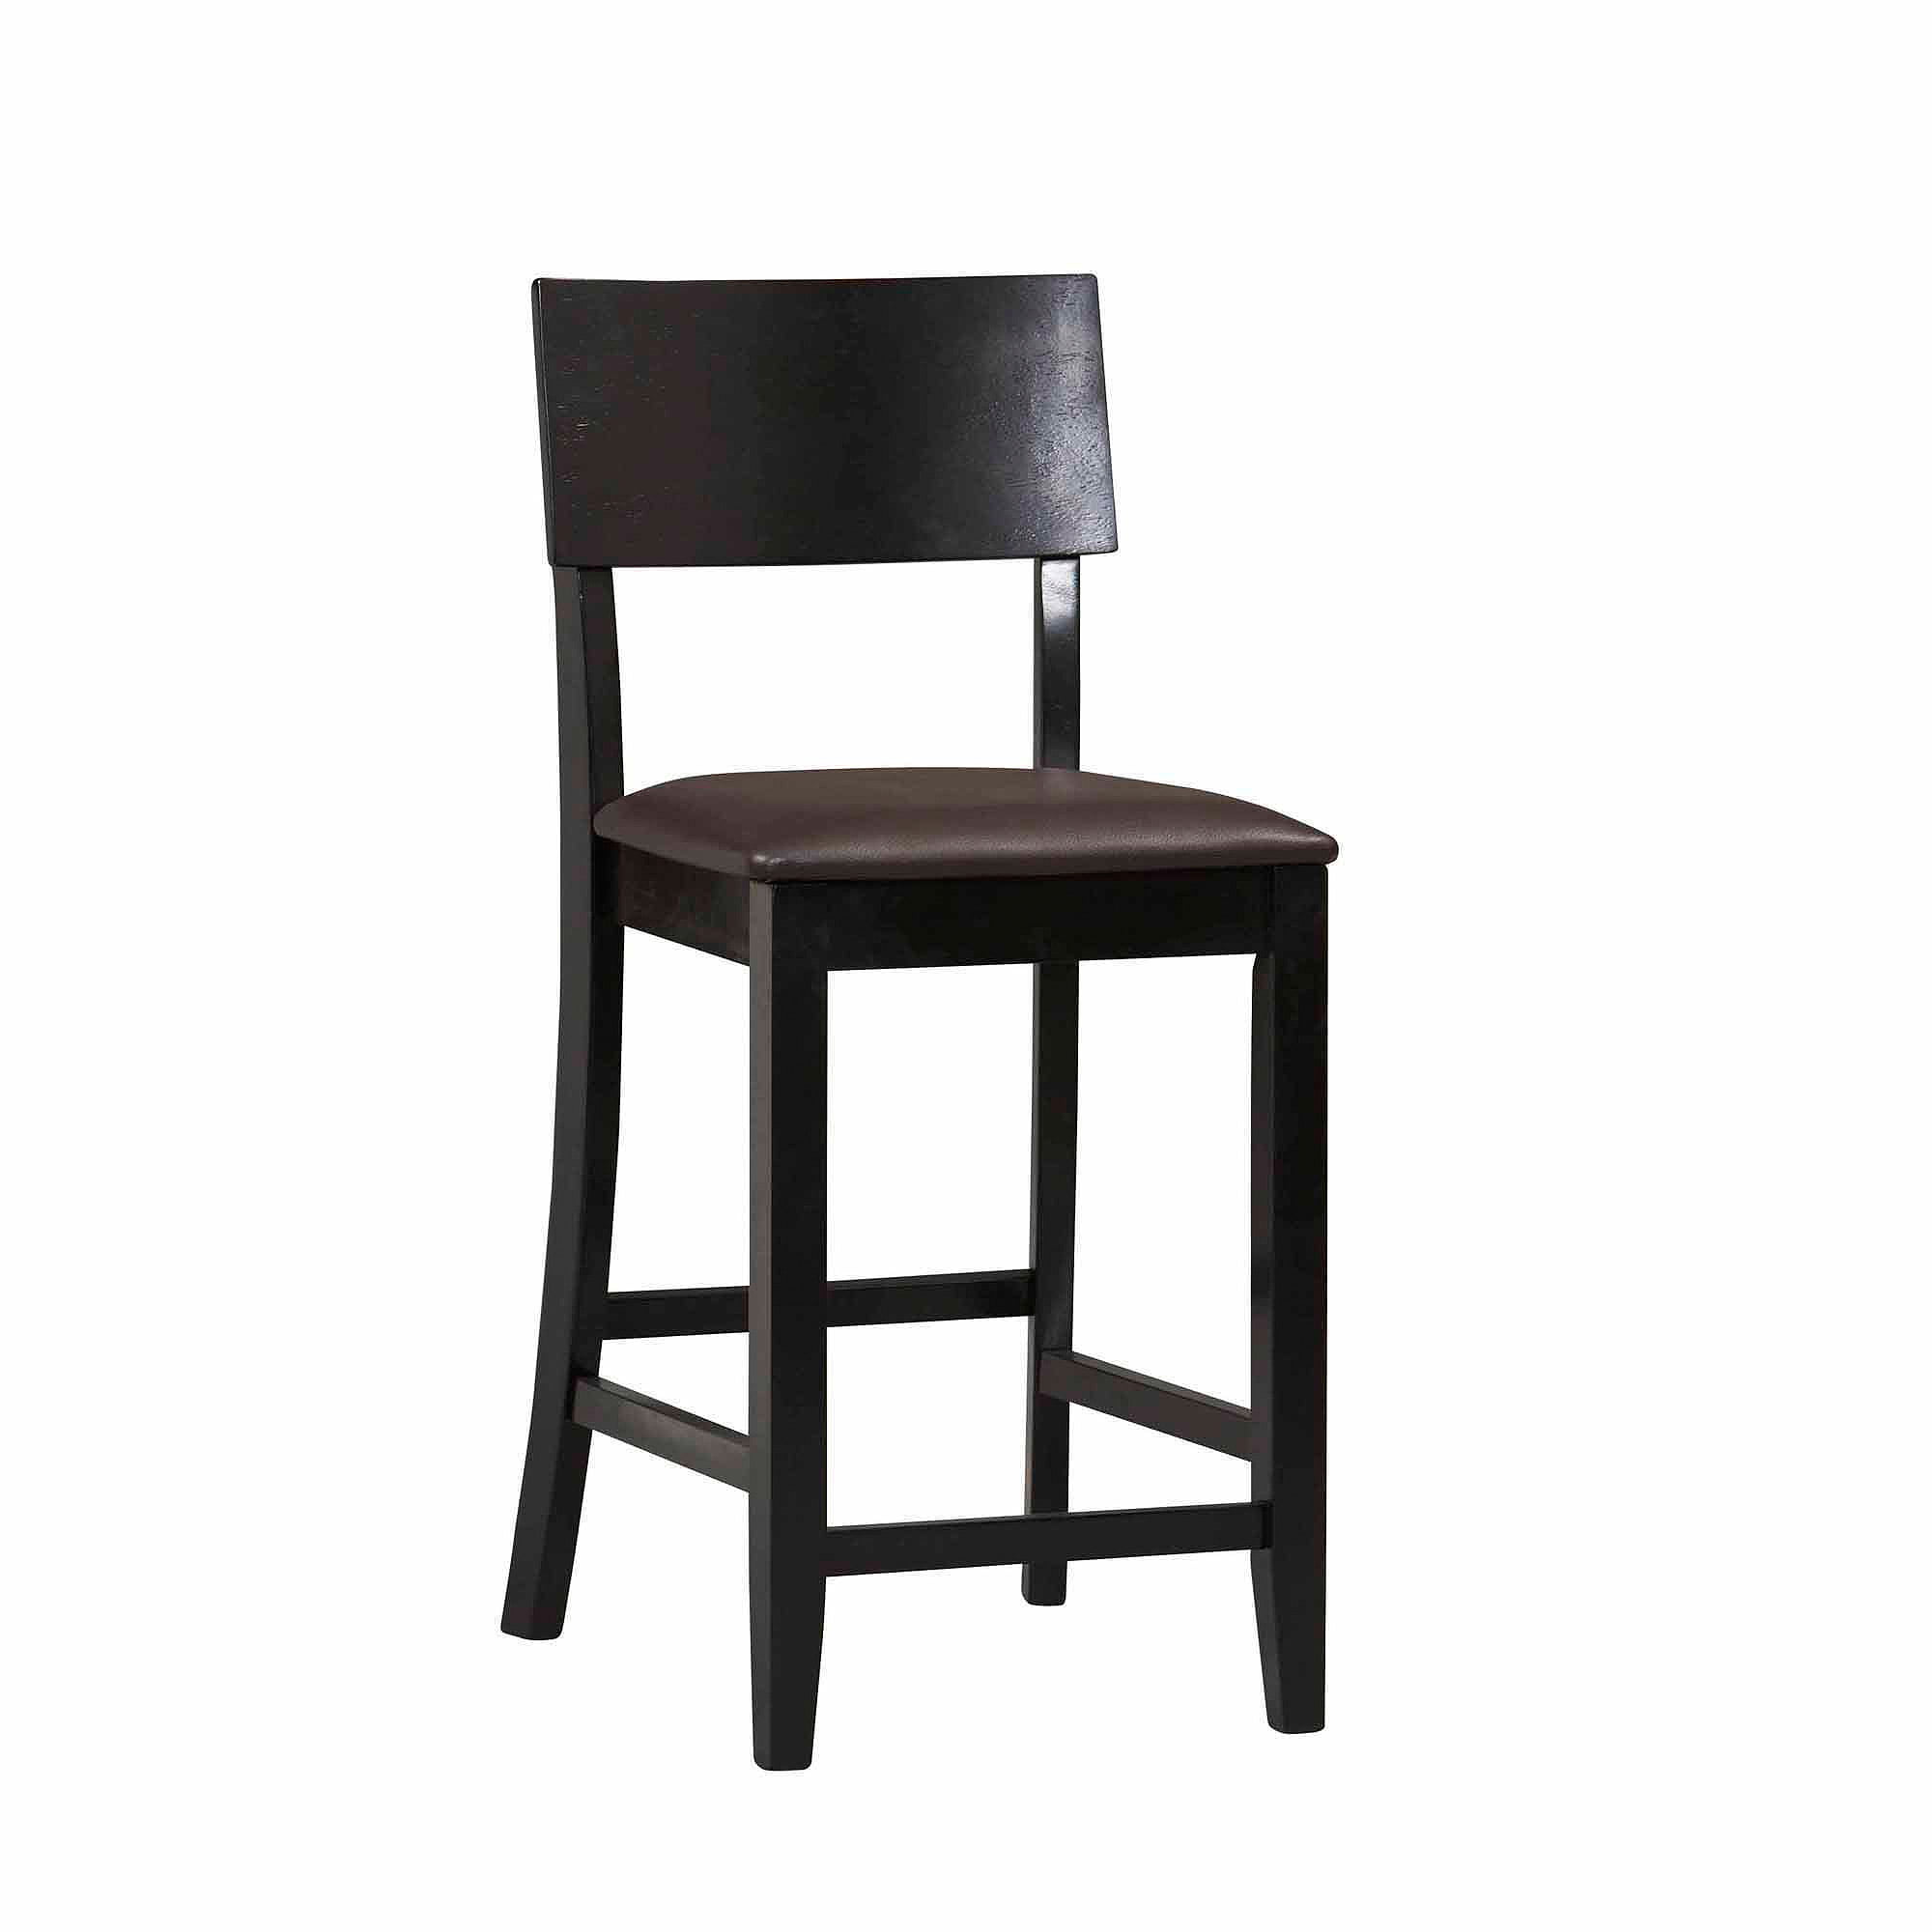 Linon Torino Contemporary Counter Stool Brown 24 inch Seat